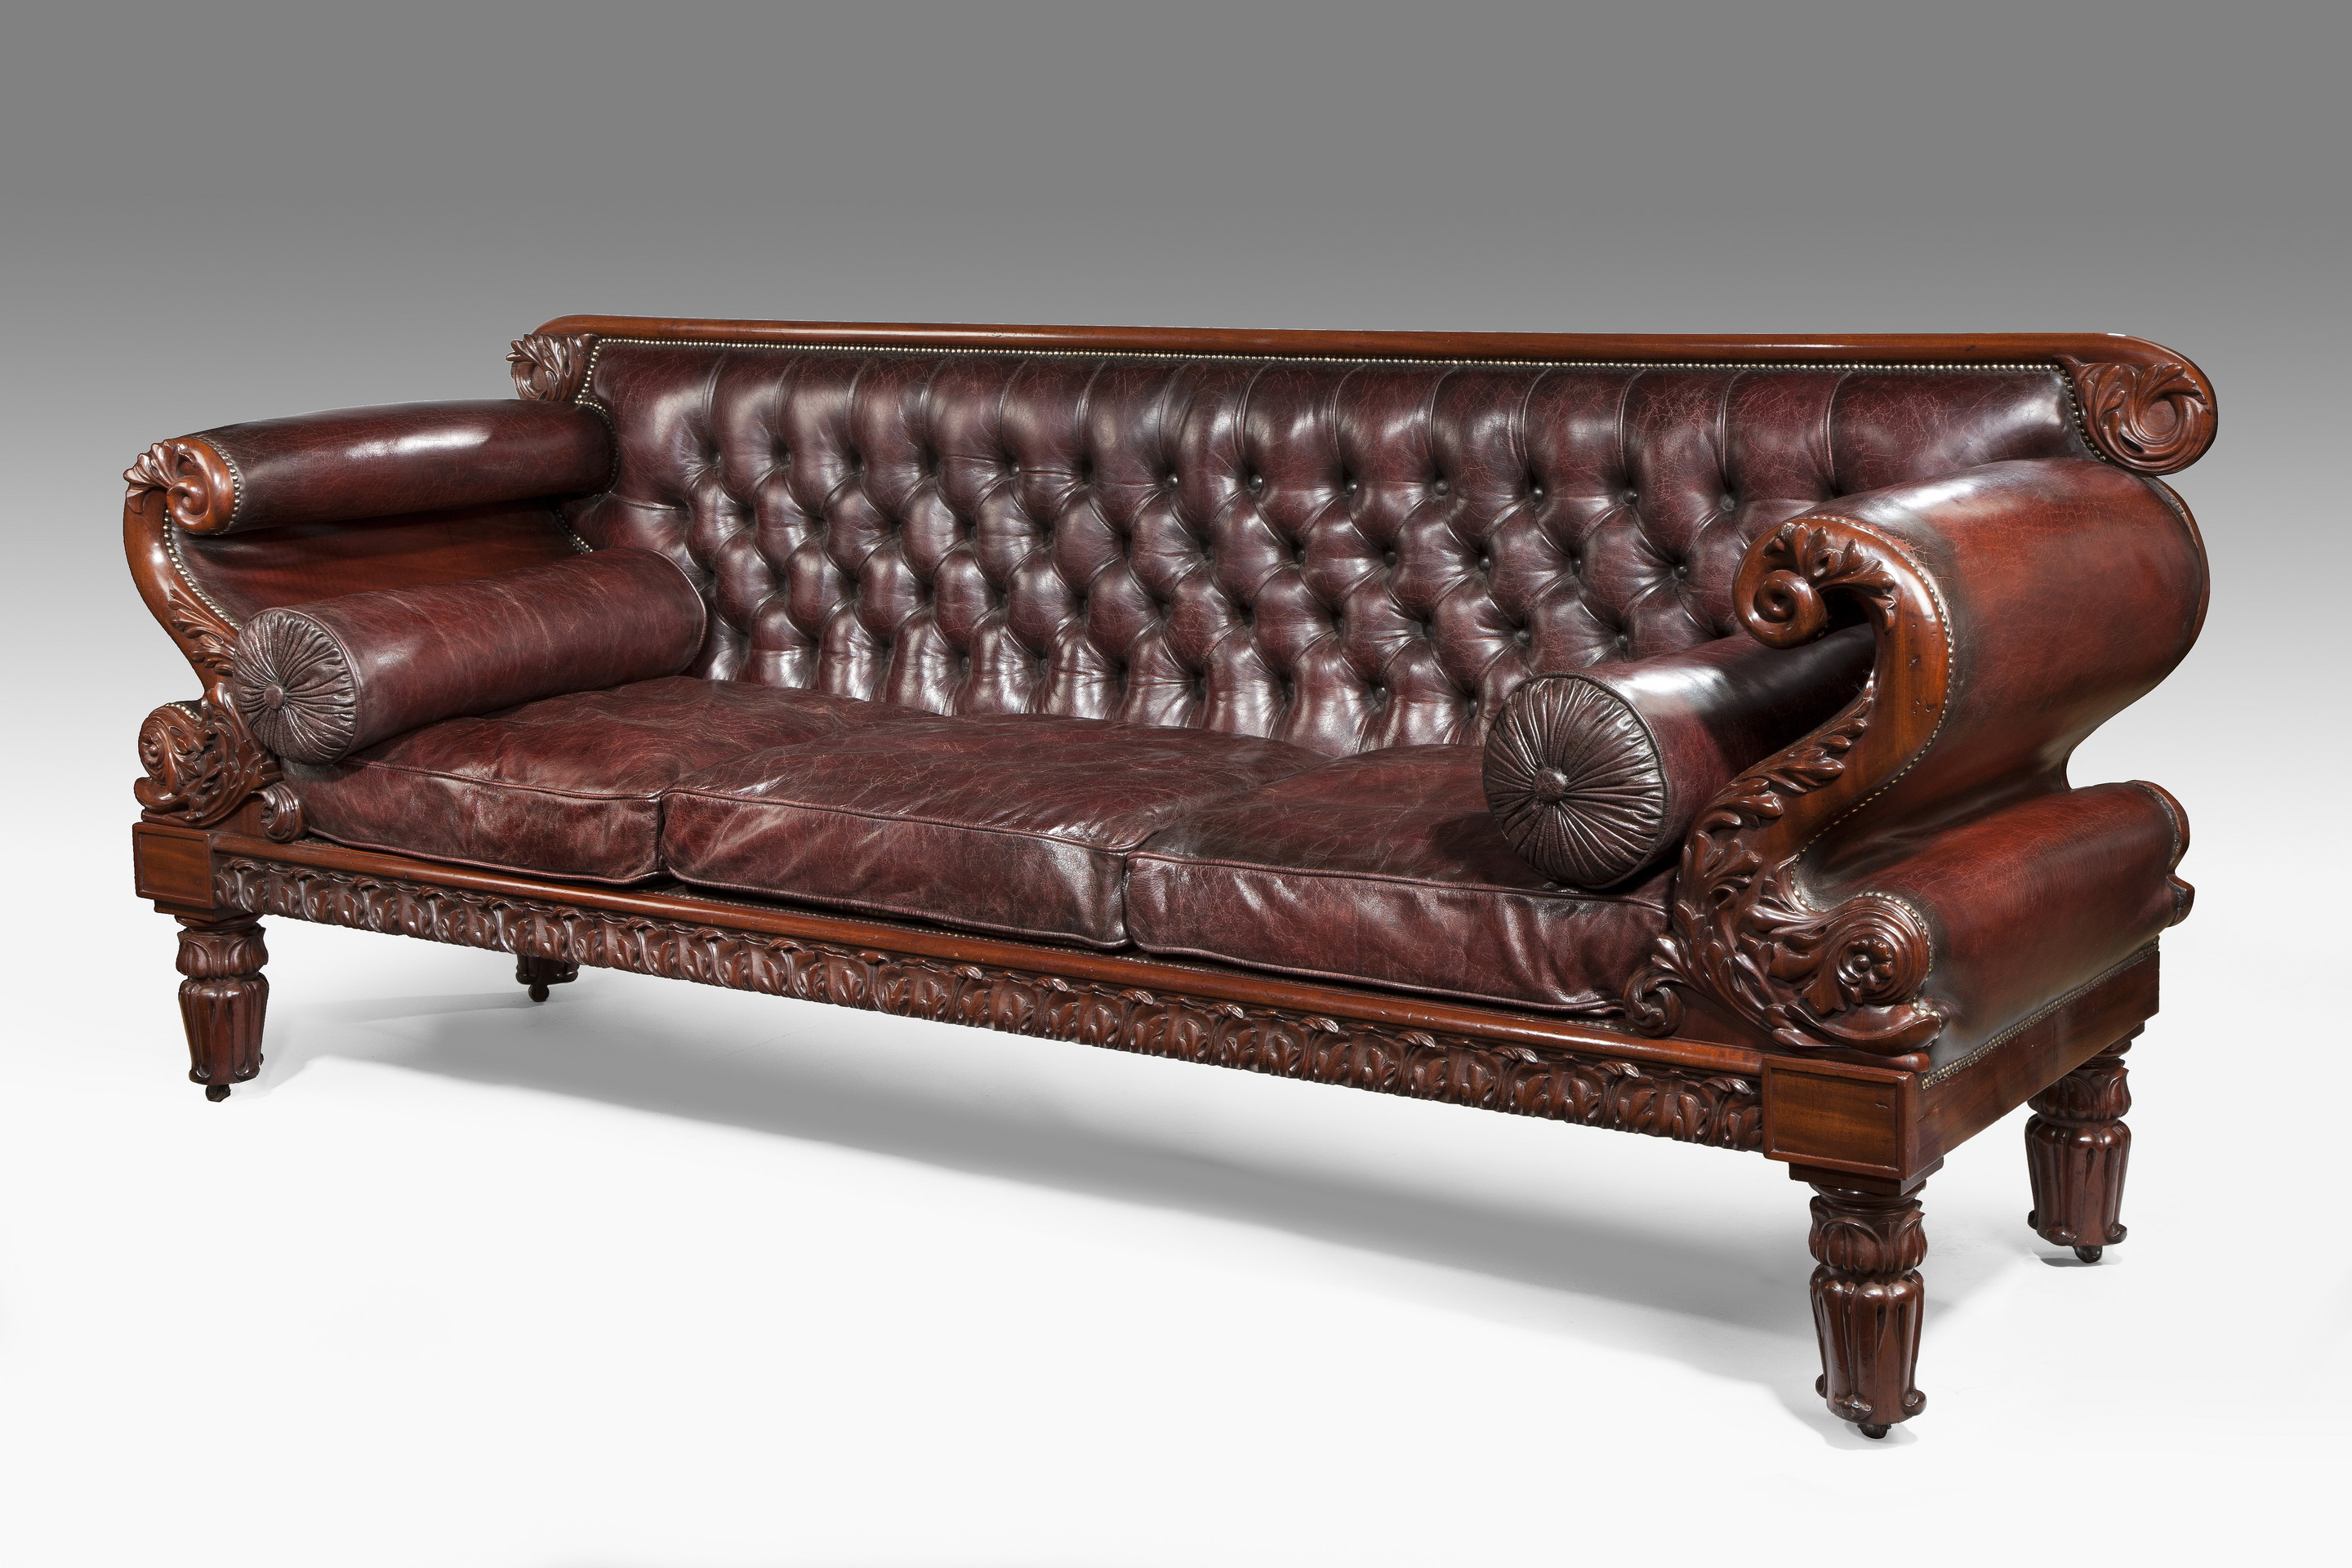 Leather Regency Antique Sofa QWVBPNQ N86